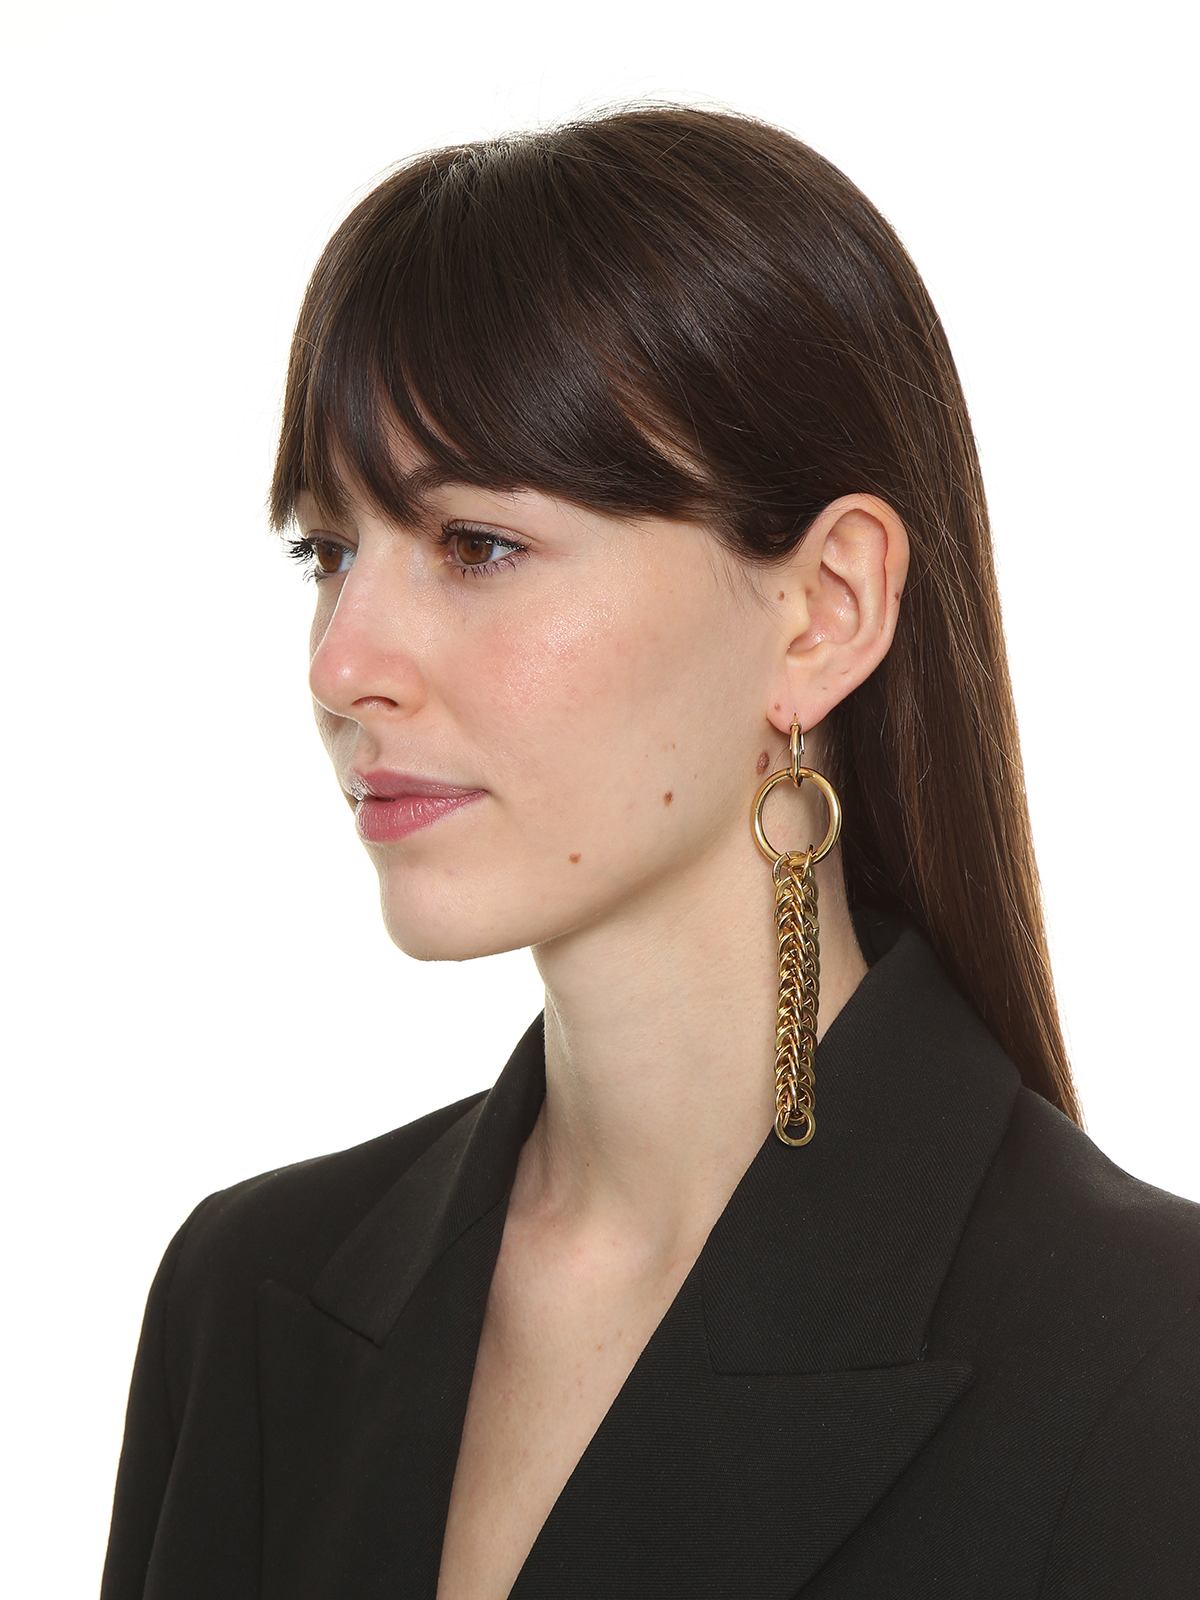 Hoop earrings embellished with pendent chain